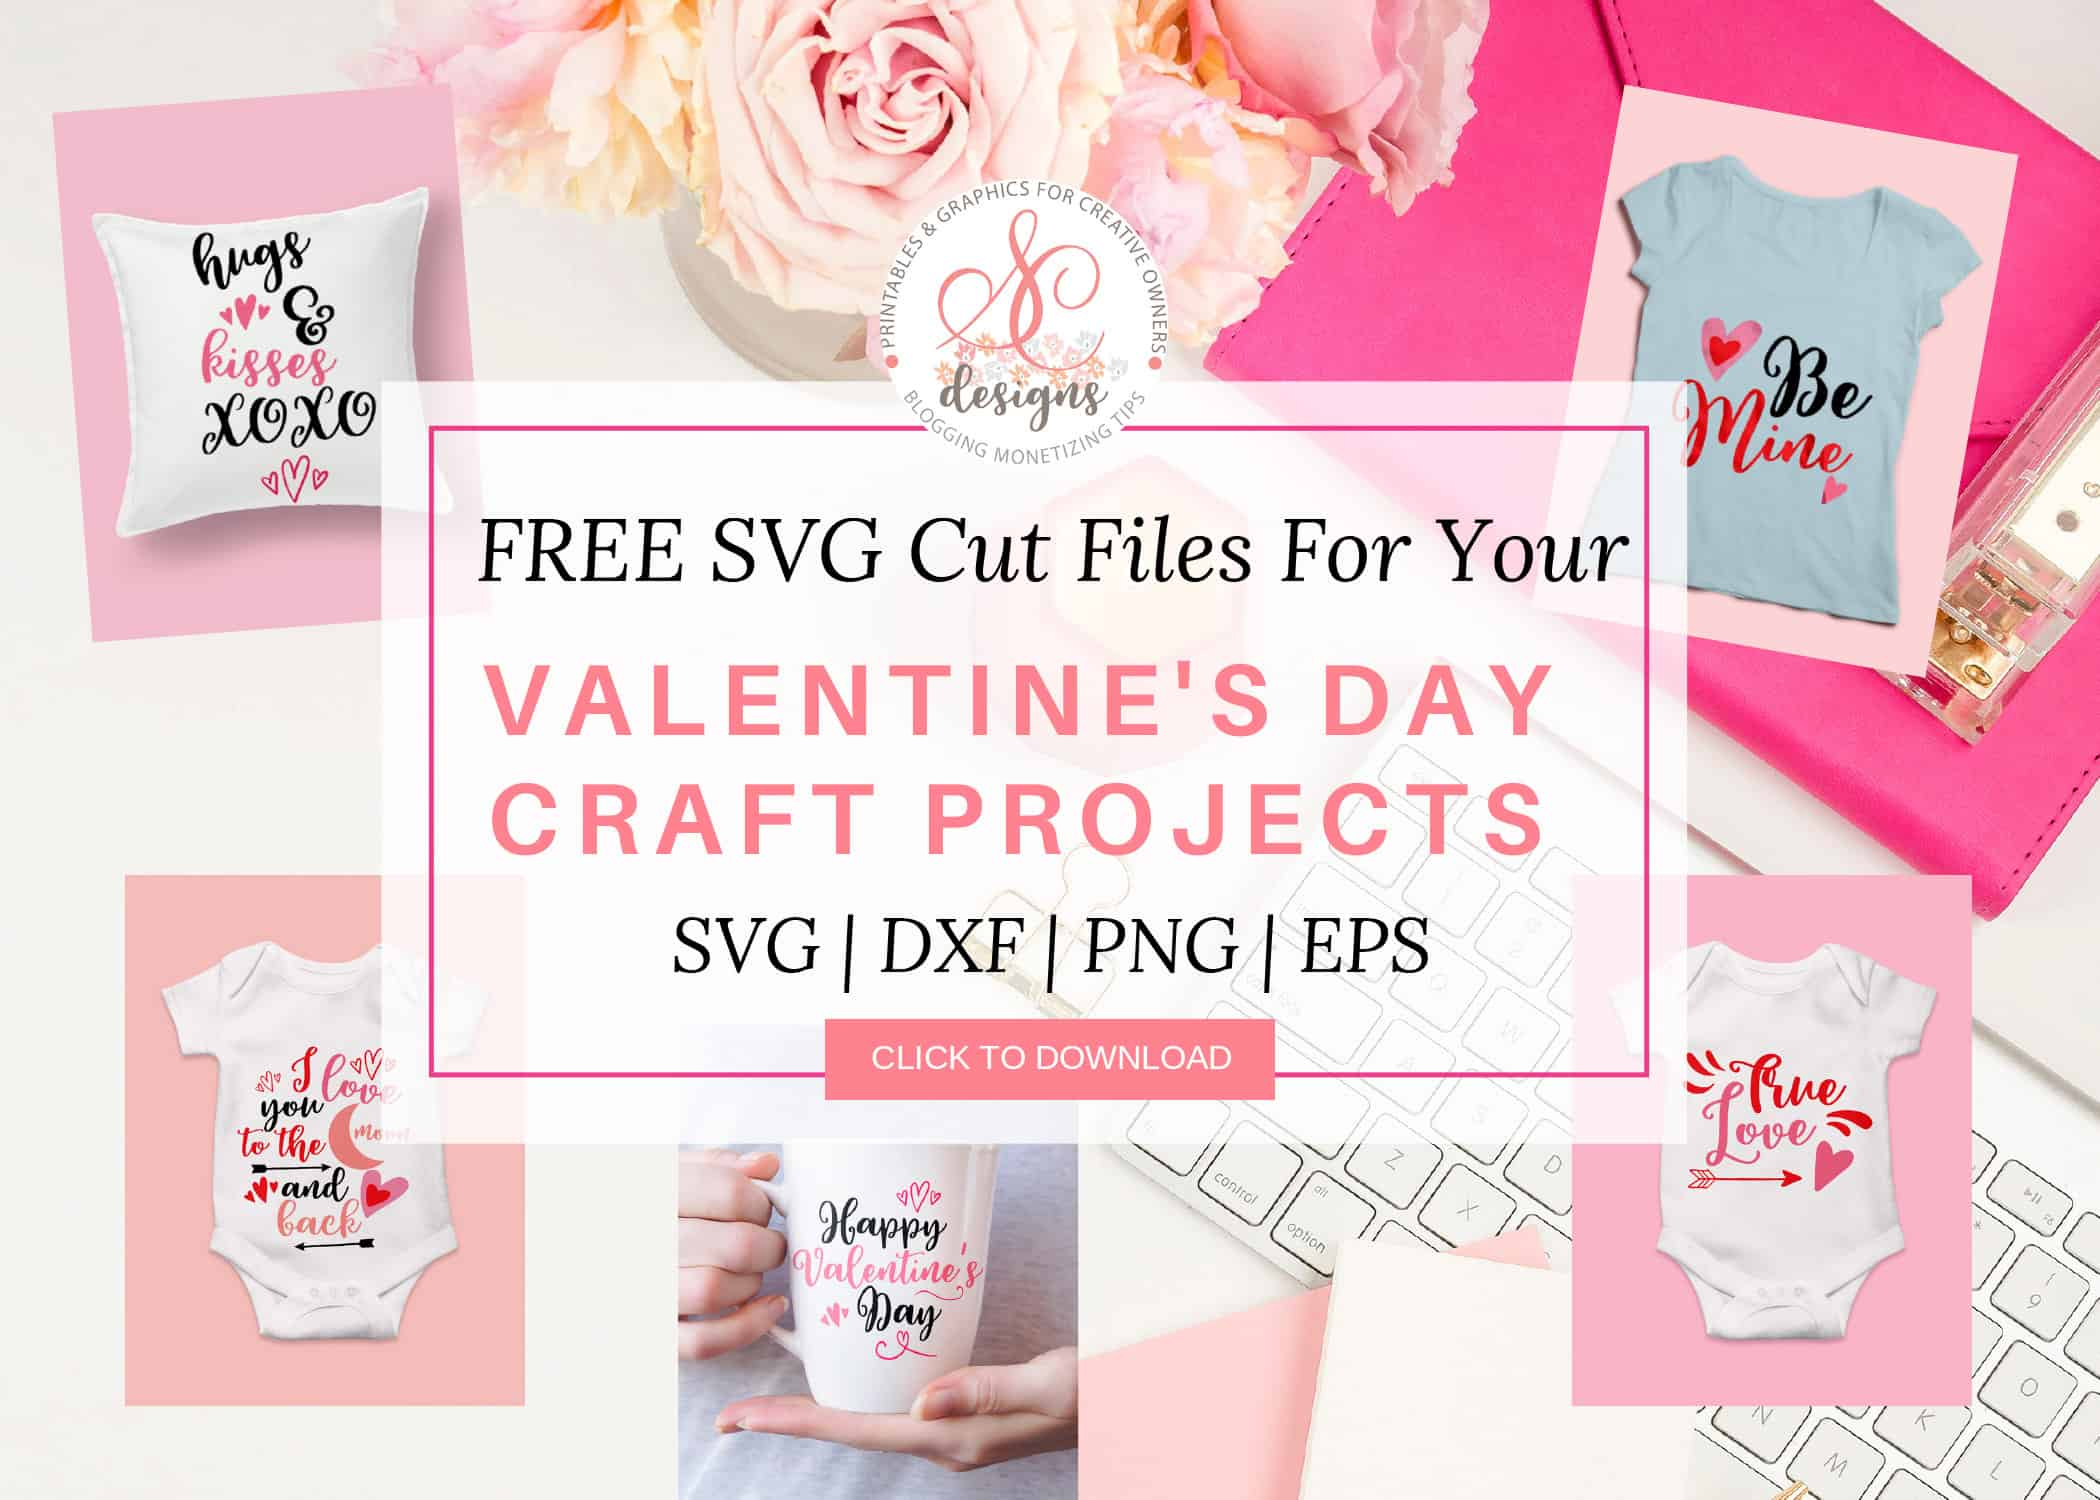 Free Valentine's SVG Cut Files. Use these lovely SVG Cut Files for your Valentine's craft projects. Make t-shirt, coffee mug, baby onesie, printables, pillow cover and more with these craft files using your Cricut and silhouette cutting machines. #freevalentinesvgcutfiles #freesvgcutfiles #freesvg #freevalentinesdaycraftfiles